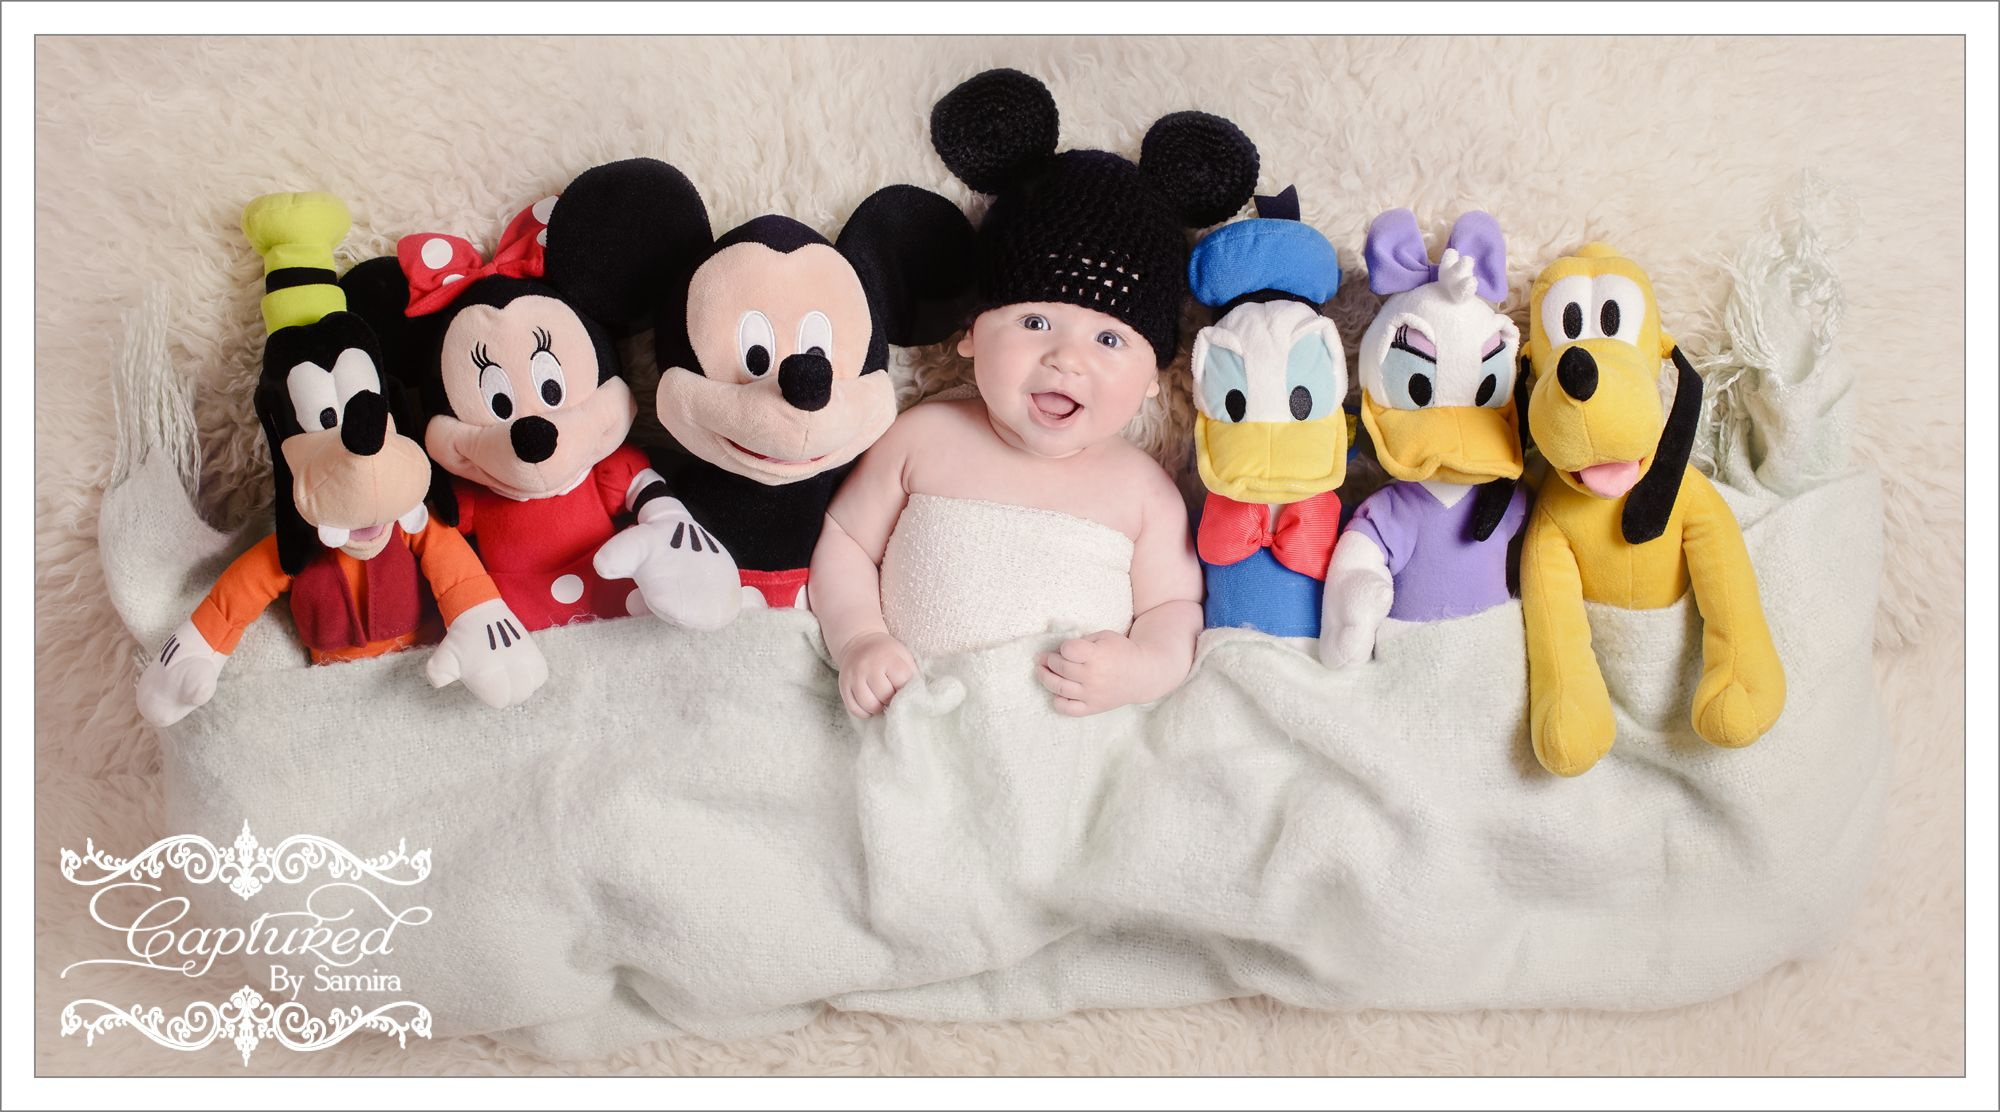 Disney inspired baby photography photo shoot mickey mouse newborn walt disney disney world minnie mouse baby florida